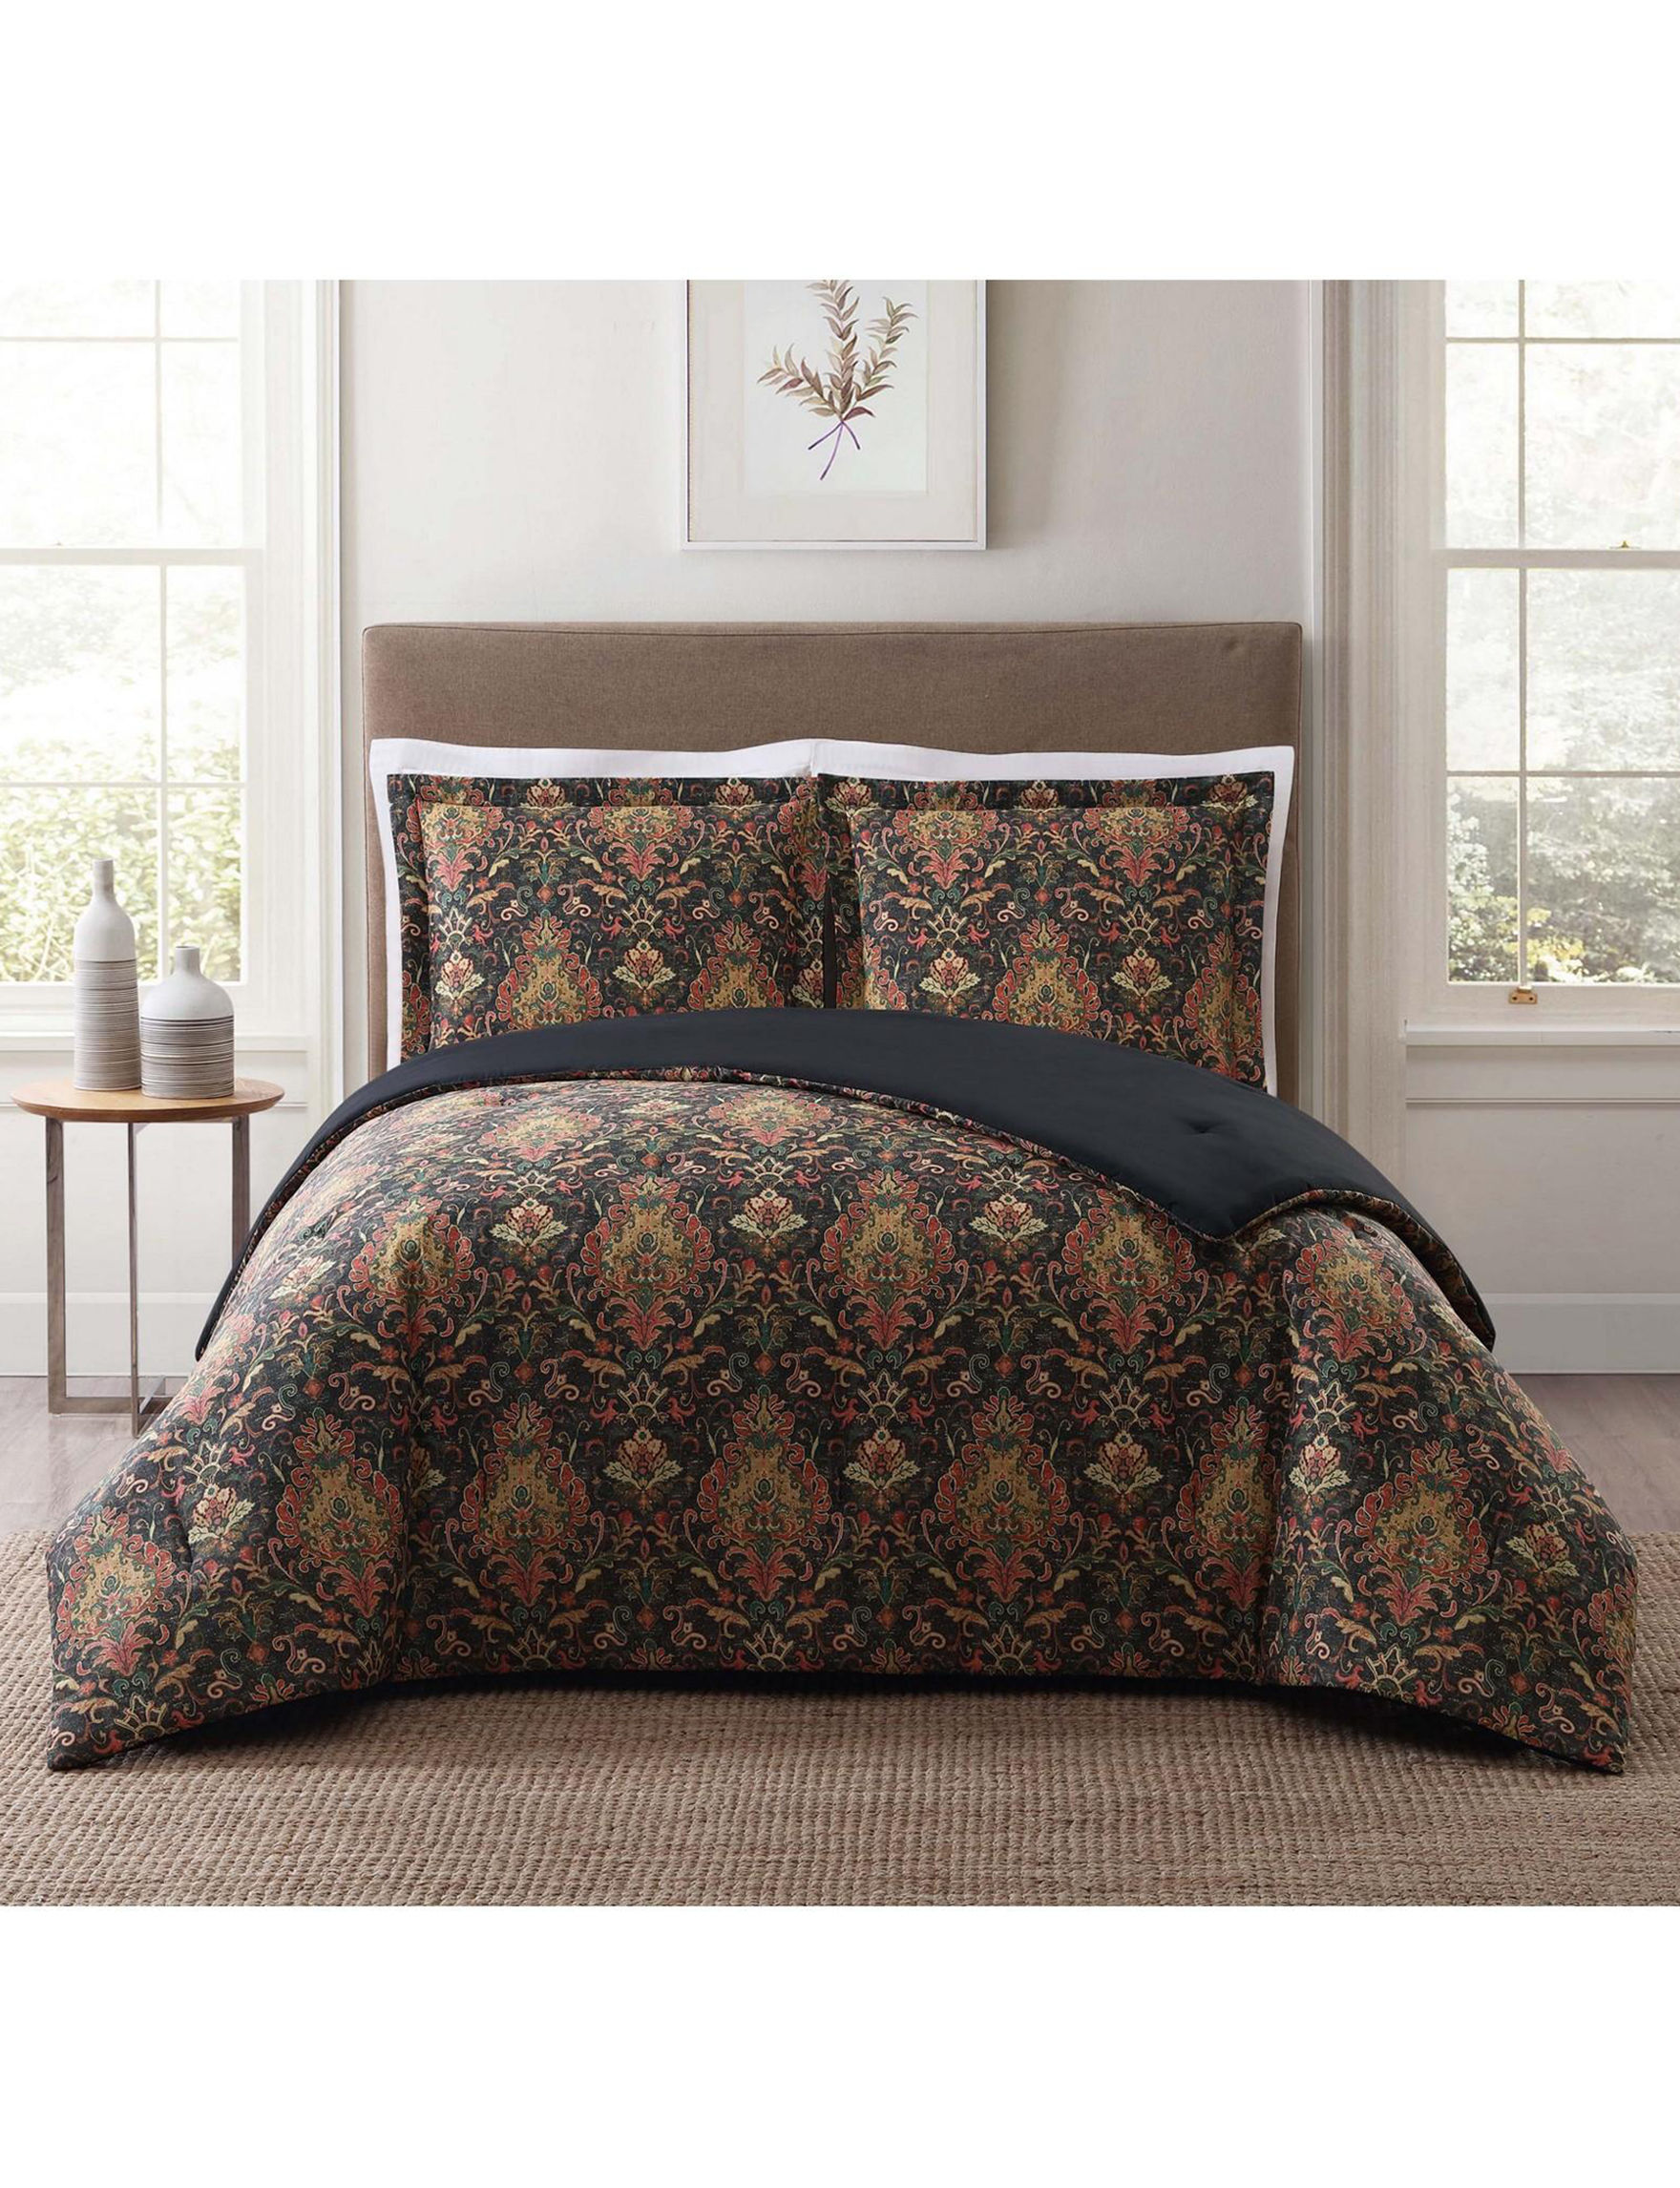 Style 212 Black Multi Comforters & Comforter Sets